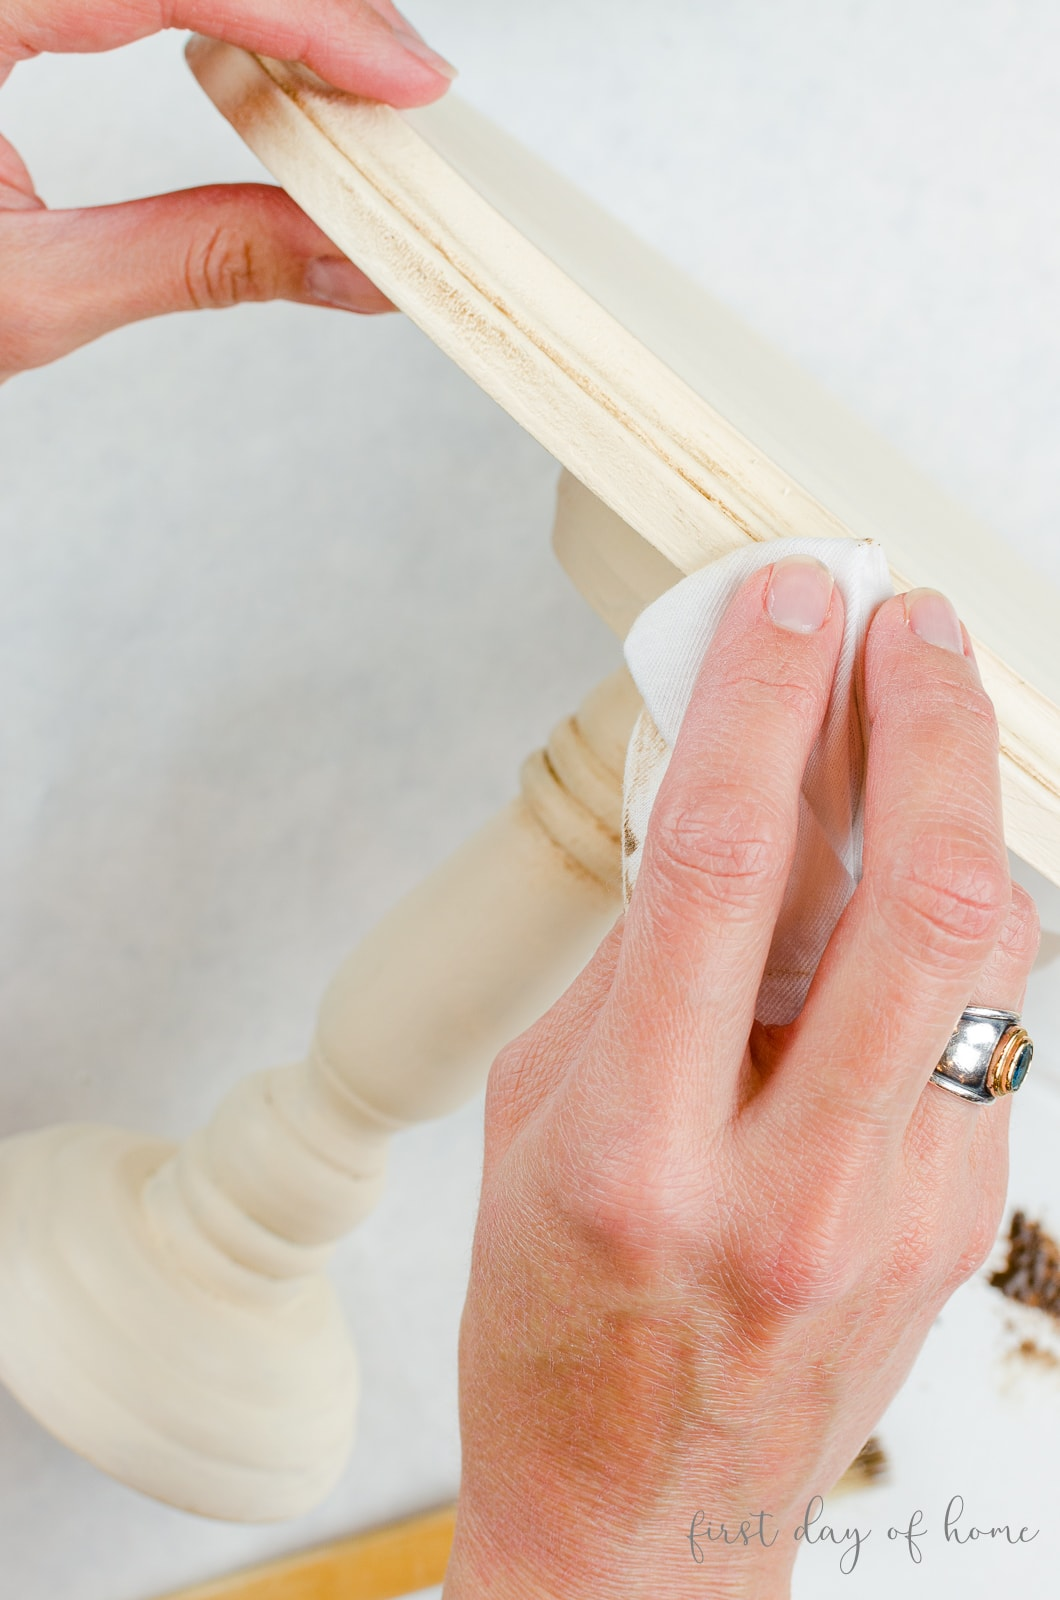 Buffing wax on DIY wooden cake stand